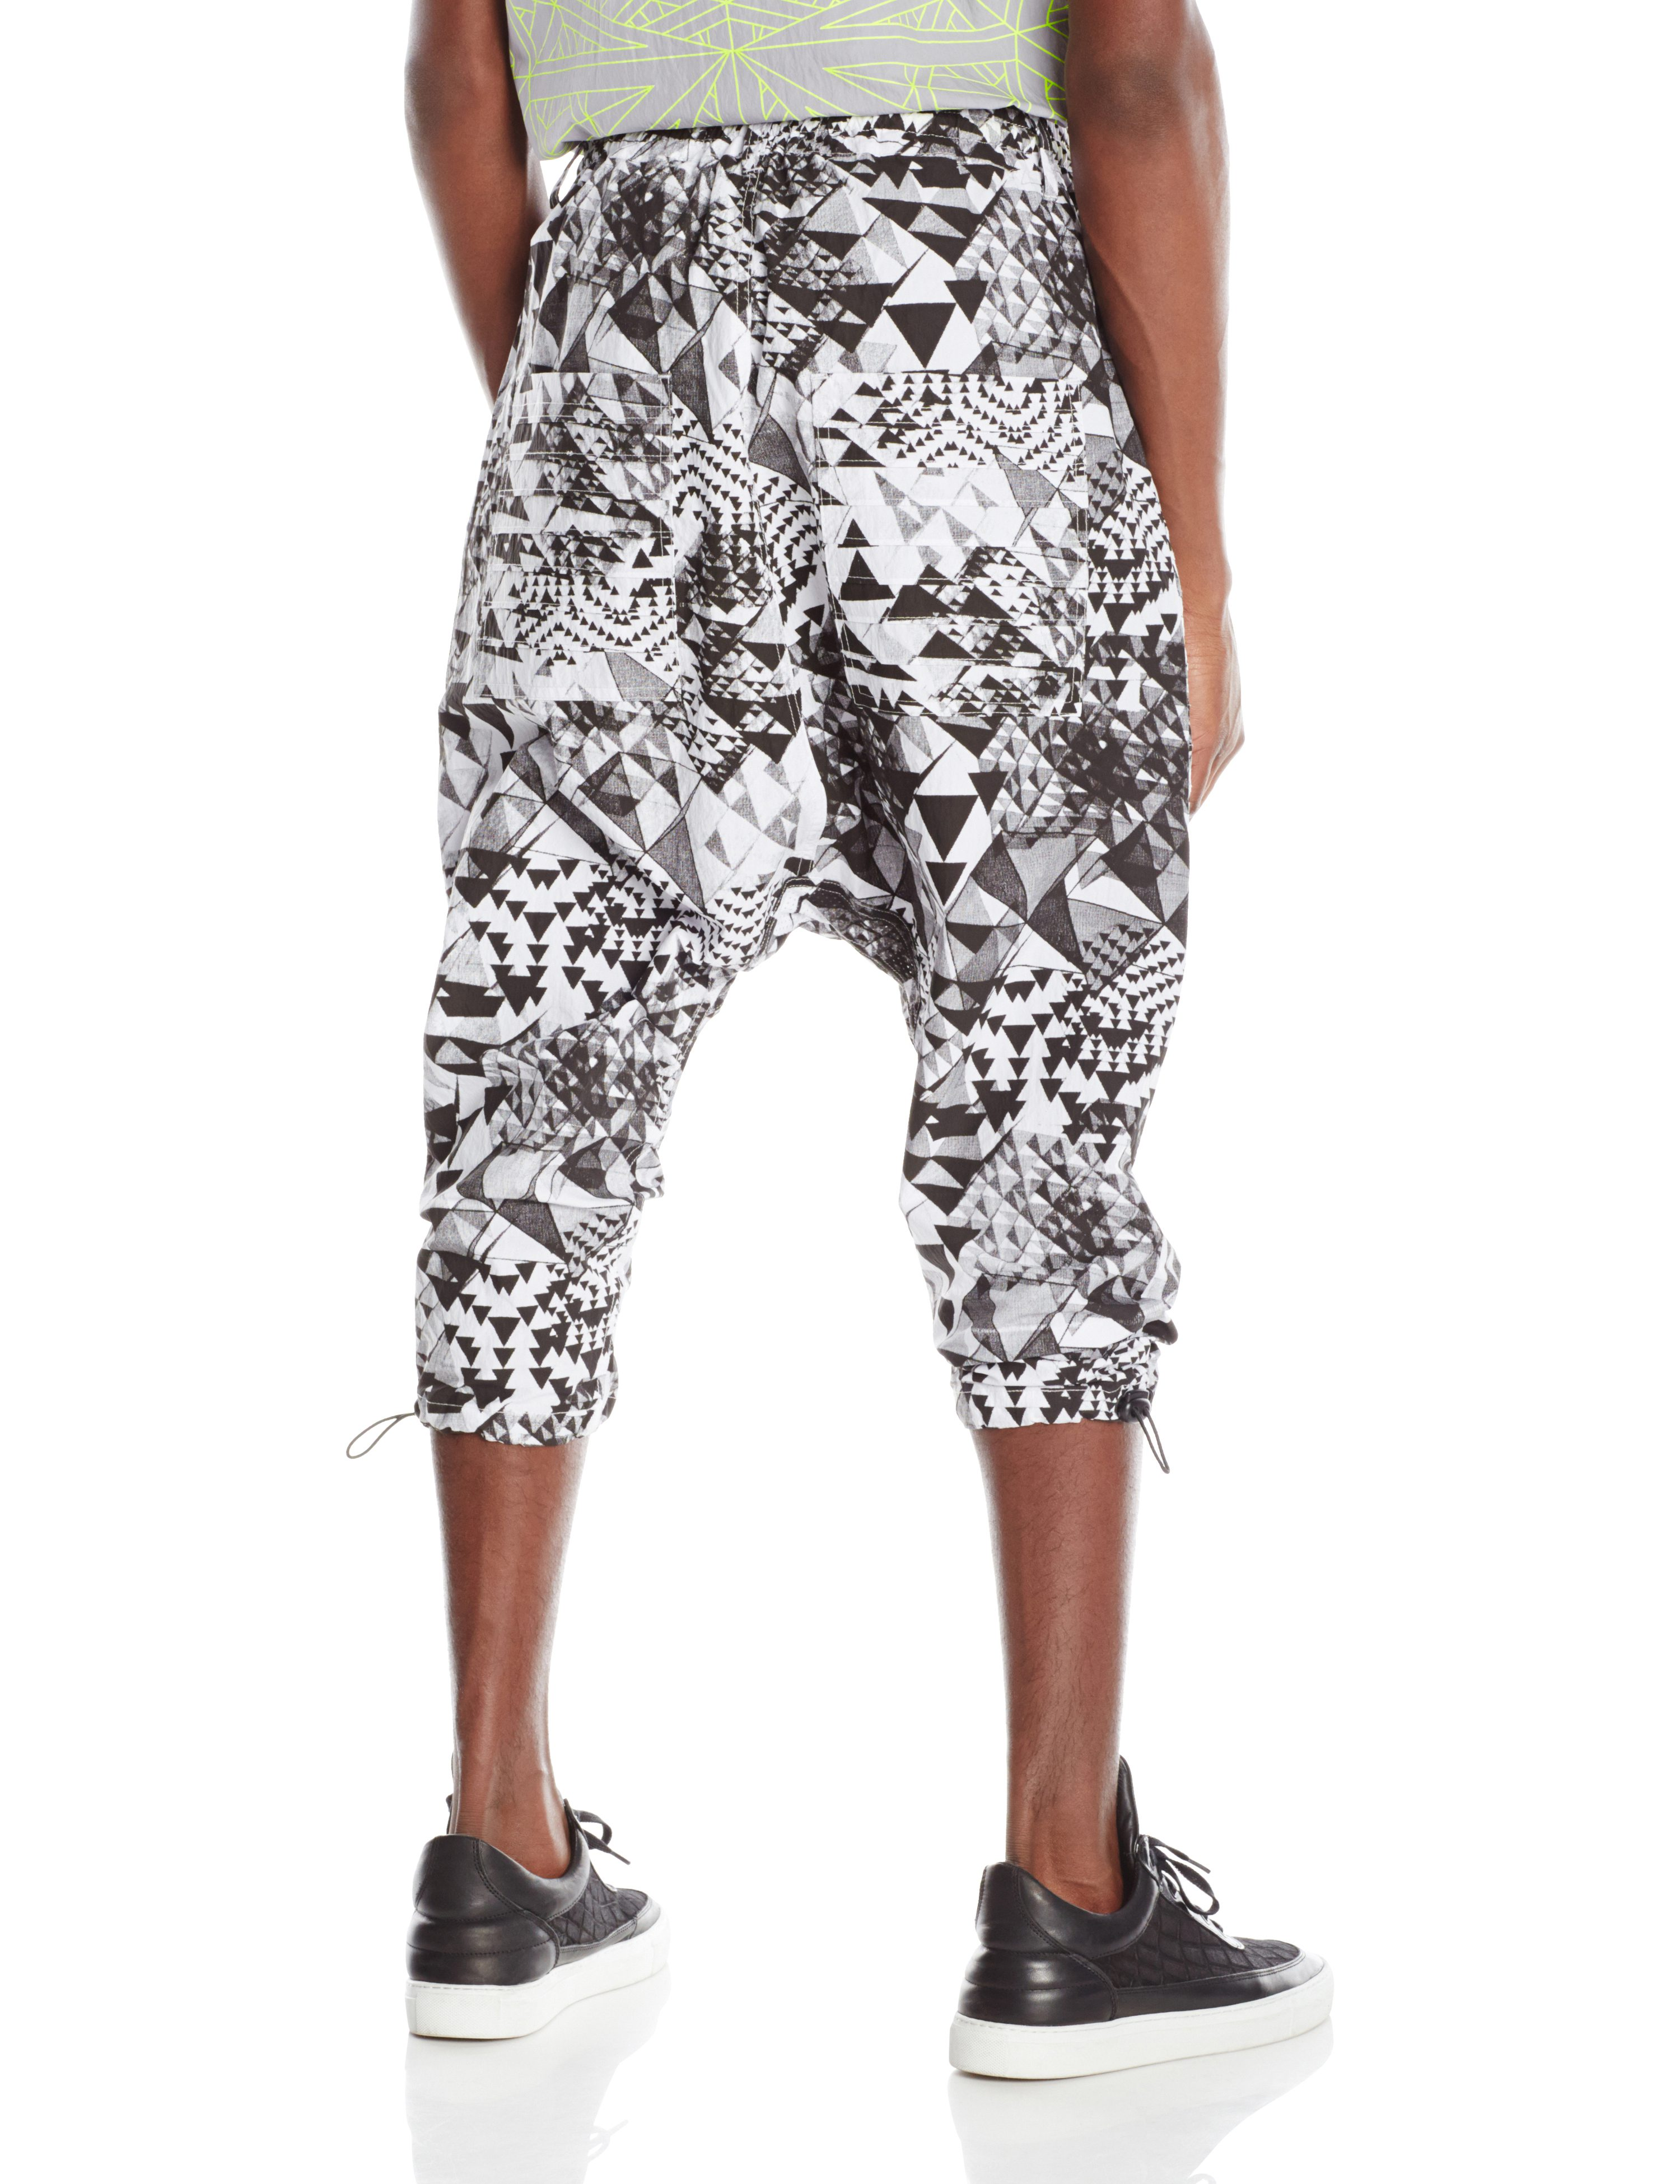 BACK-BACK-DROP PANT 2.0 WHITE BLACK PRINT.0600